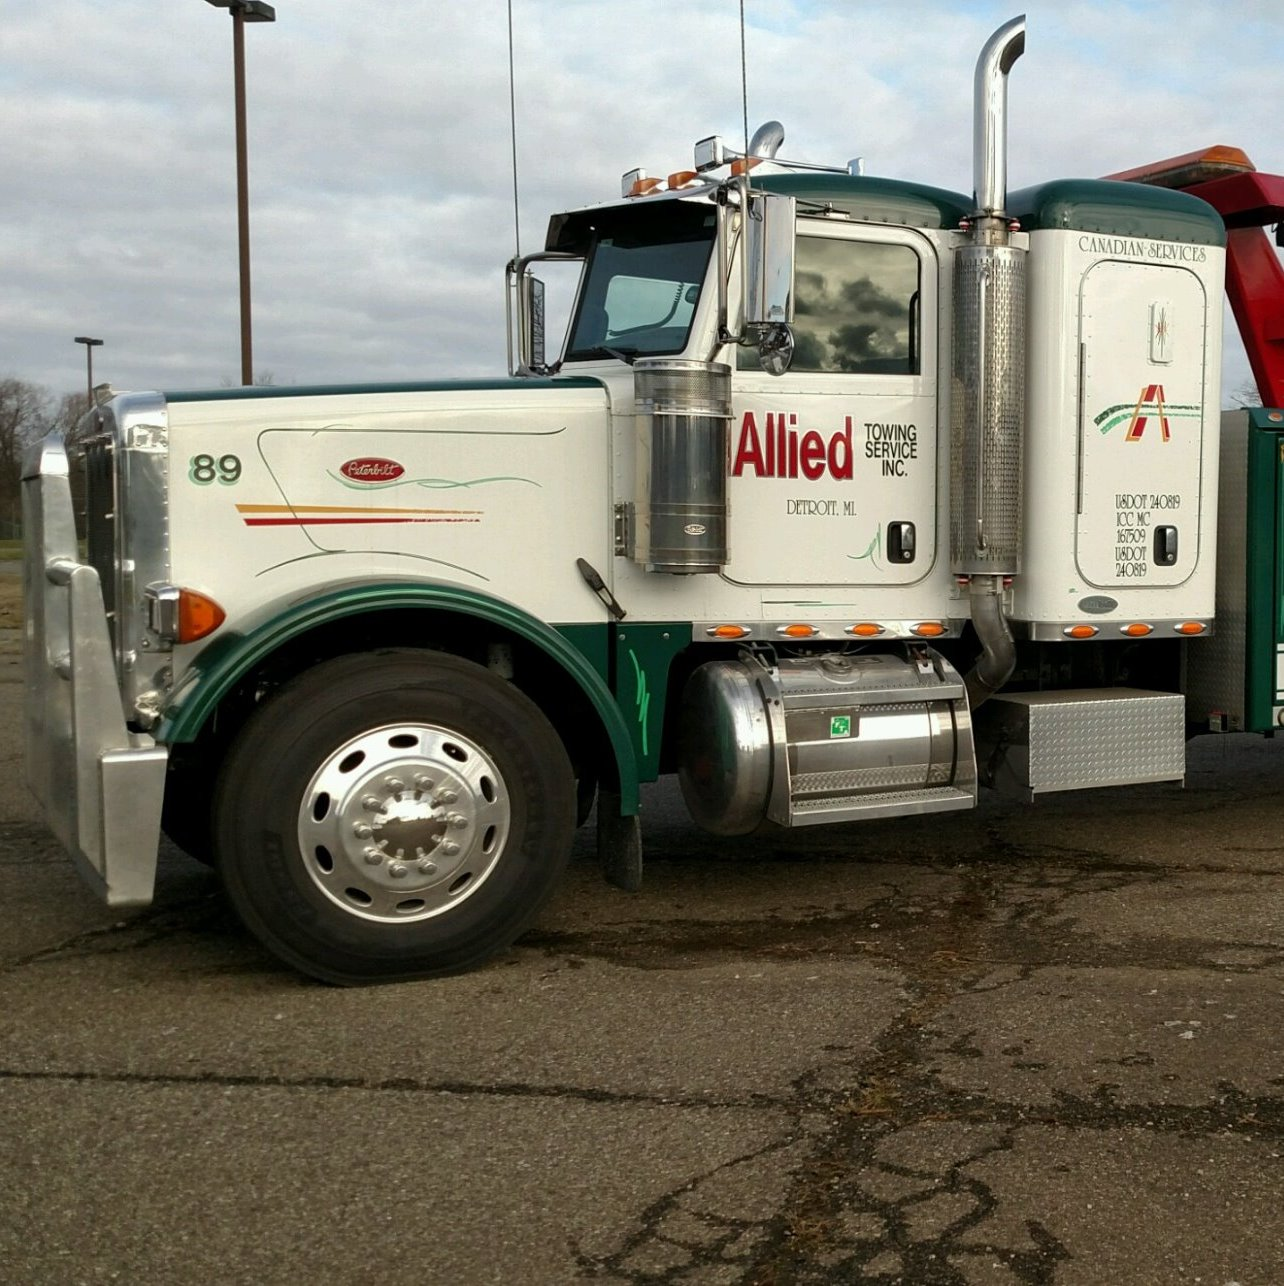 Towing Service in MI Detroit 48212 Allied Towing Service Inc 5241 East McNichols Road  (844)834-3417